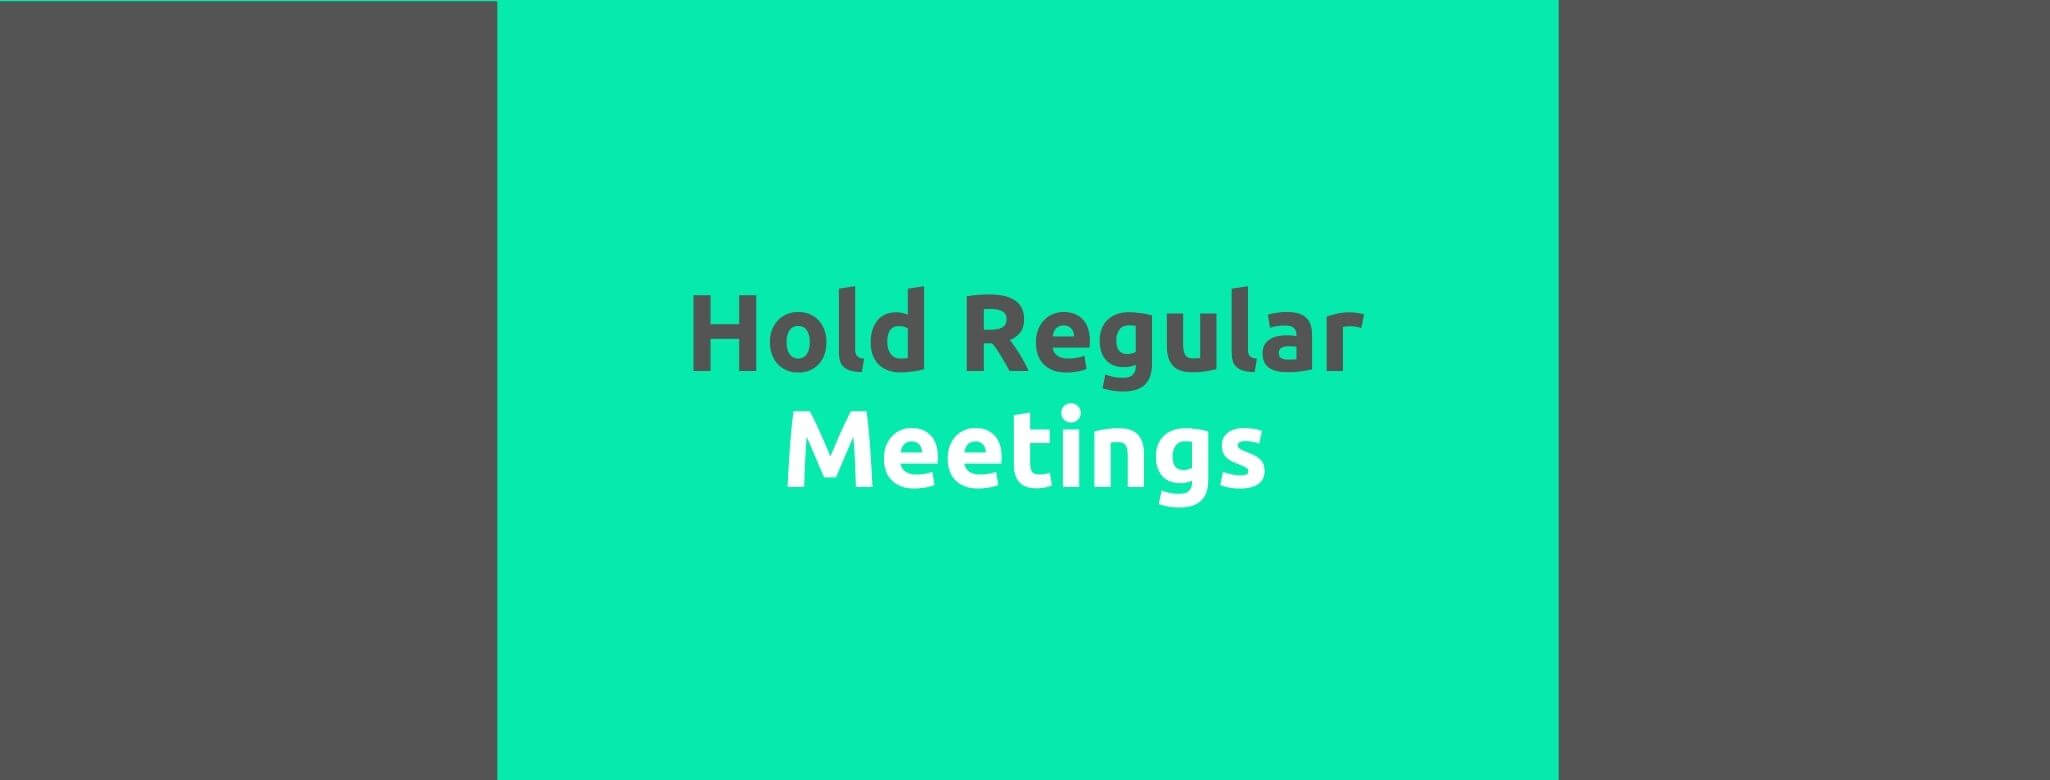 Hold Regular Meetings - 35 Things Every Seller Should Do to Offer Great Customer Service - Replyco Helpdesk Software for eCommerce